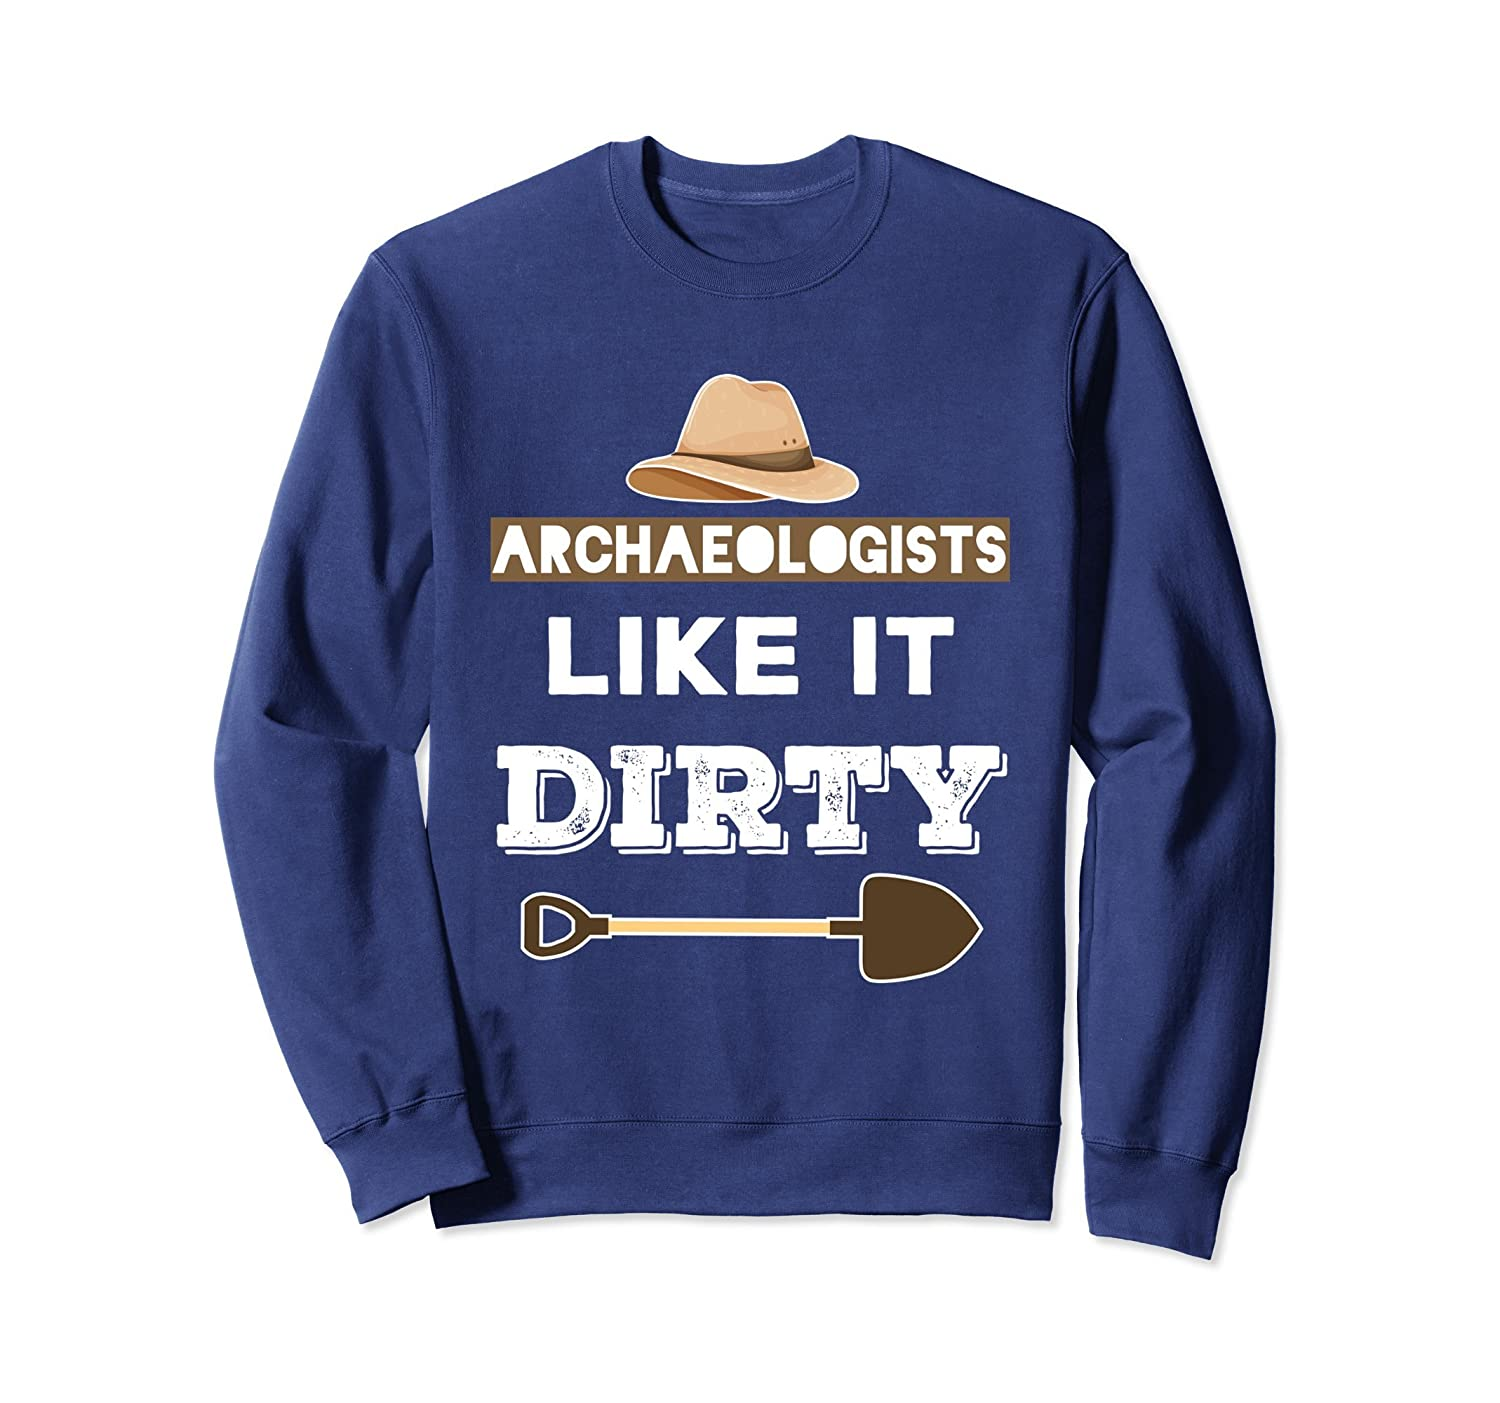 Archaeology Sweatshirt - Archaeologists Like It Dirty-TH